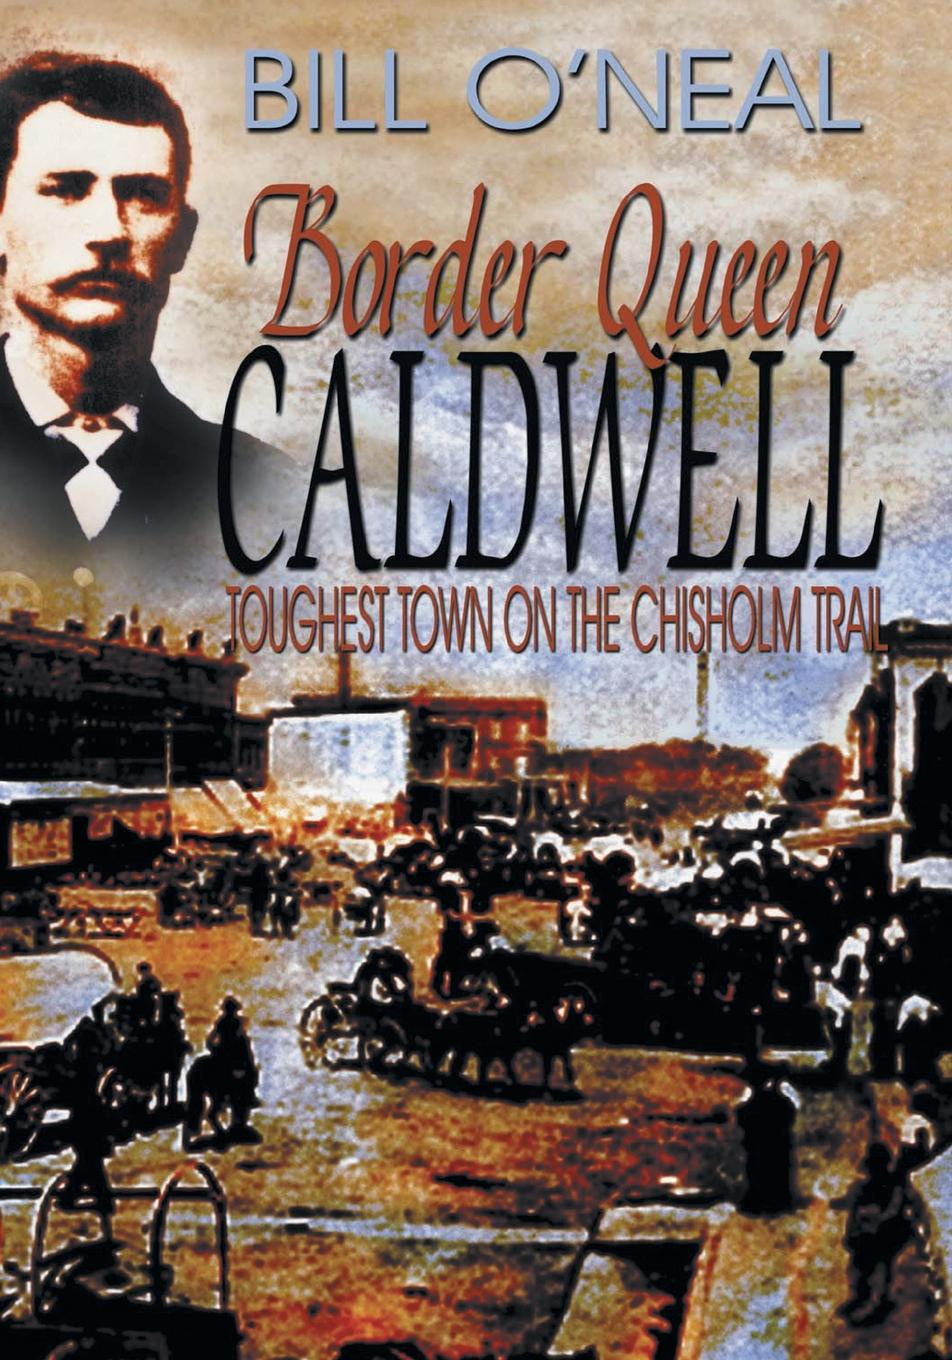 Bill O'Neal Border Queen Caldwell. Toughest Town on the Chisholm Trail town in a wild moose chase